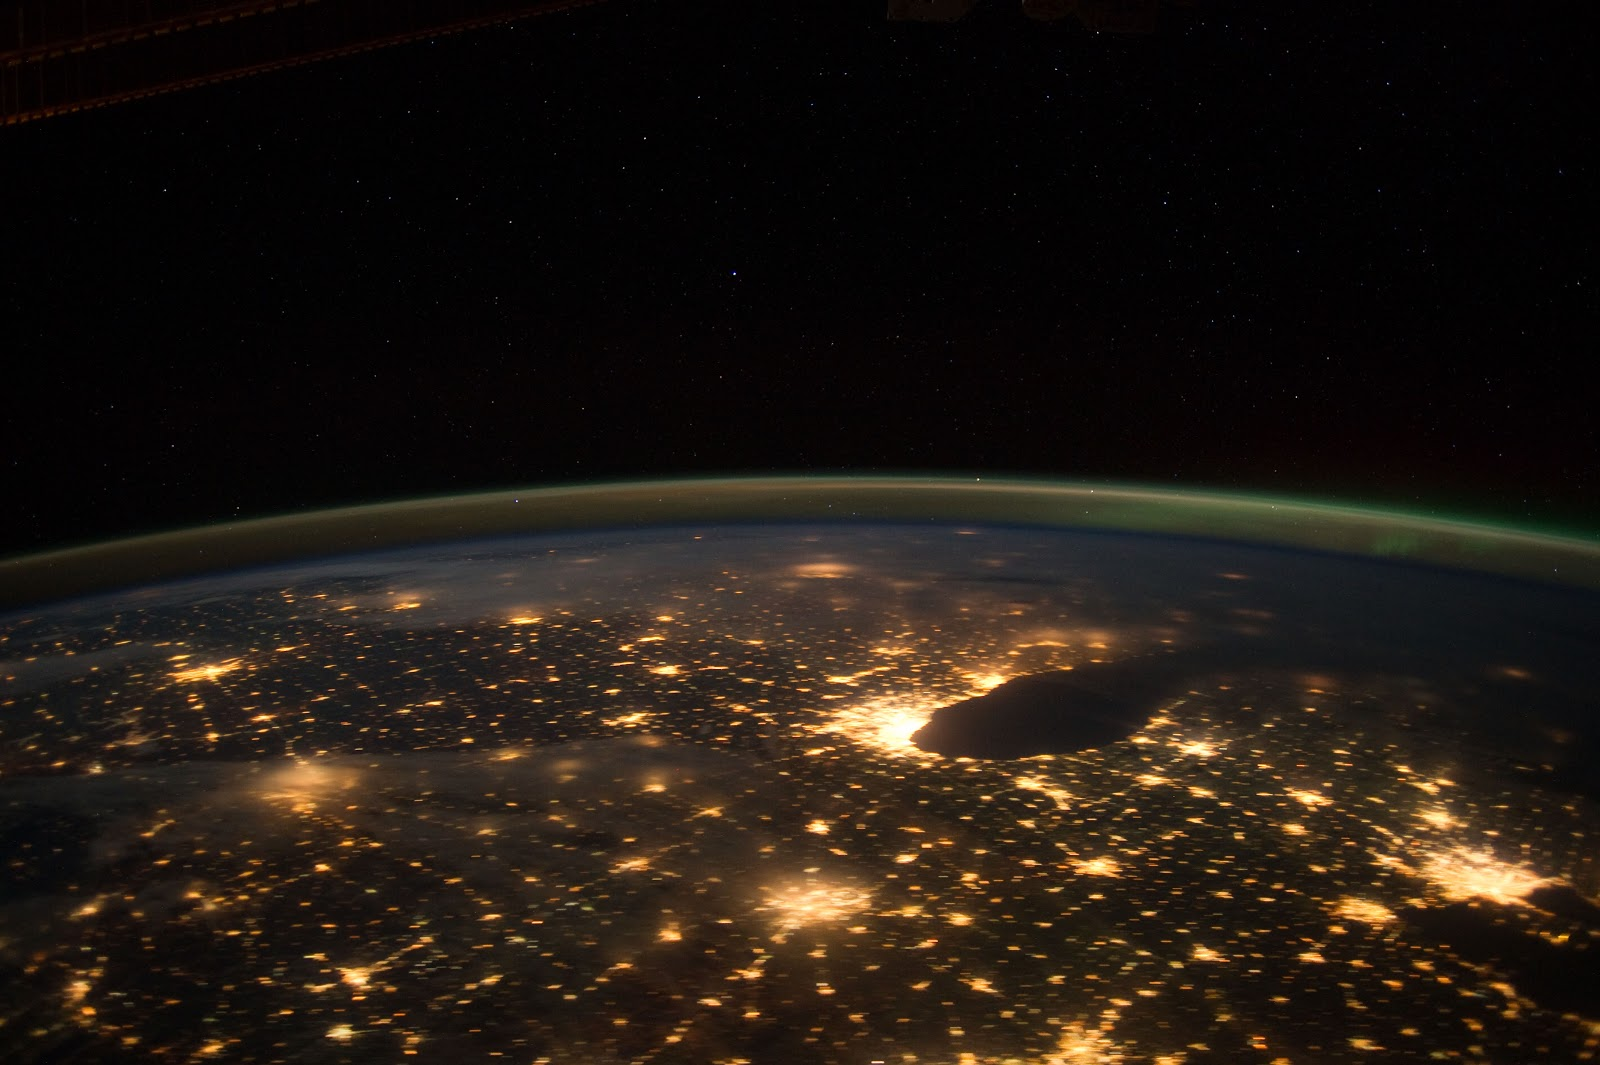 Images of Space Station Viewing Tonight Michigan - #SpaceHero